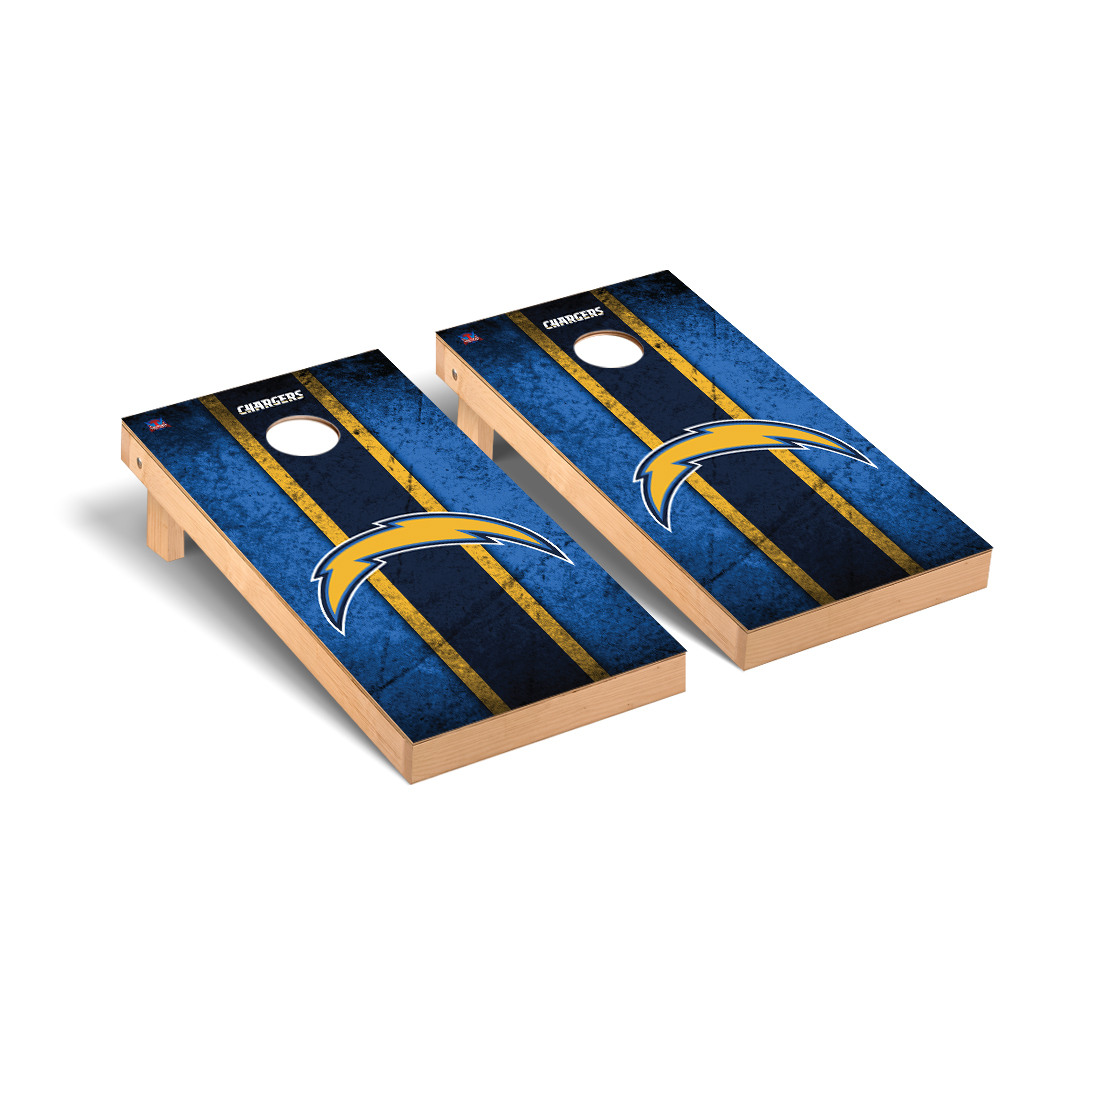 Los Angeles Chargers NFL Football Cornhole Game Set Vintage Version 2